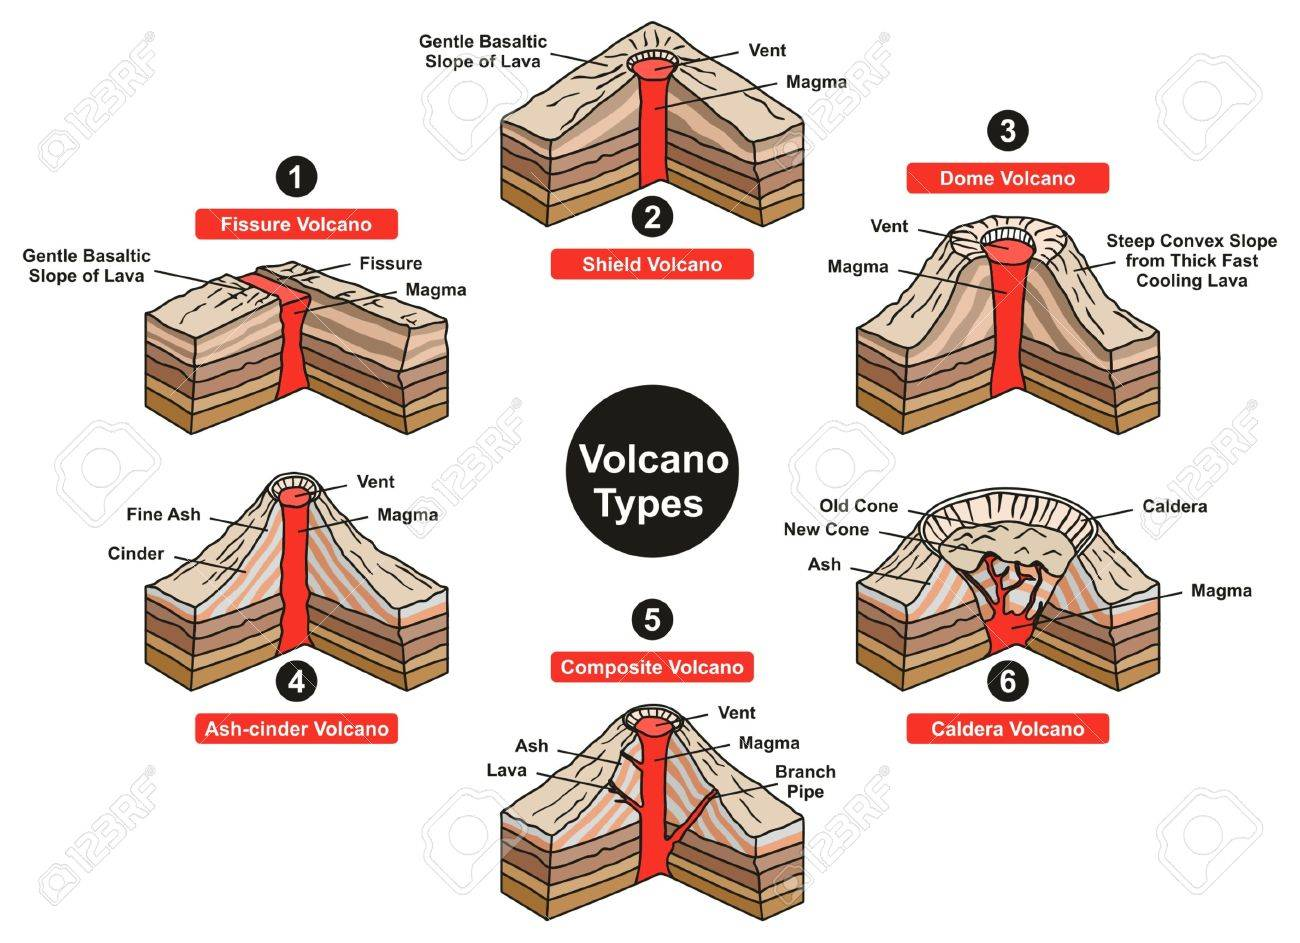 hight resolution of volcano types infographic diagram including fissure sheild dome diagram of caldera